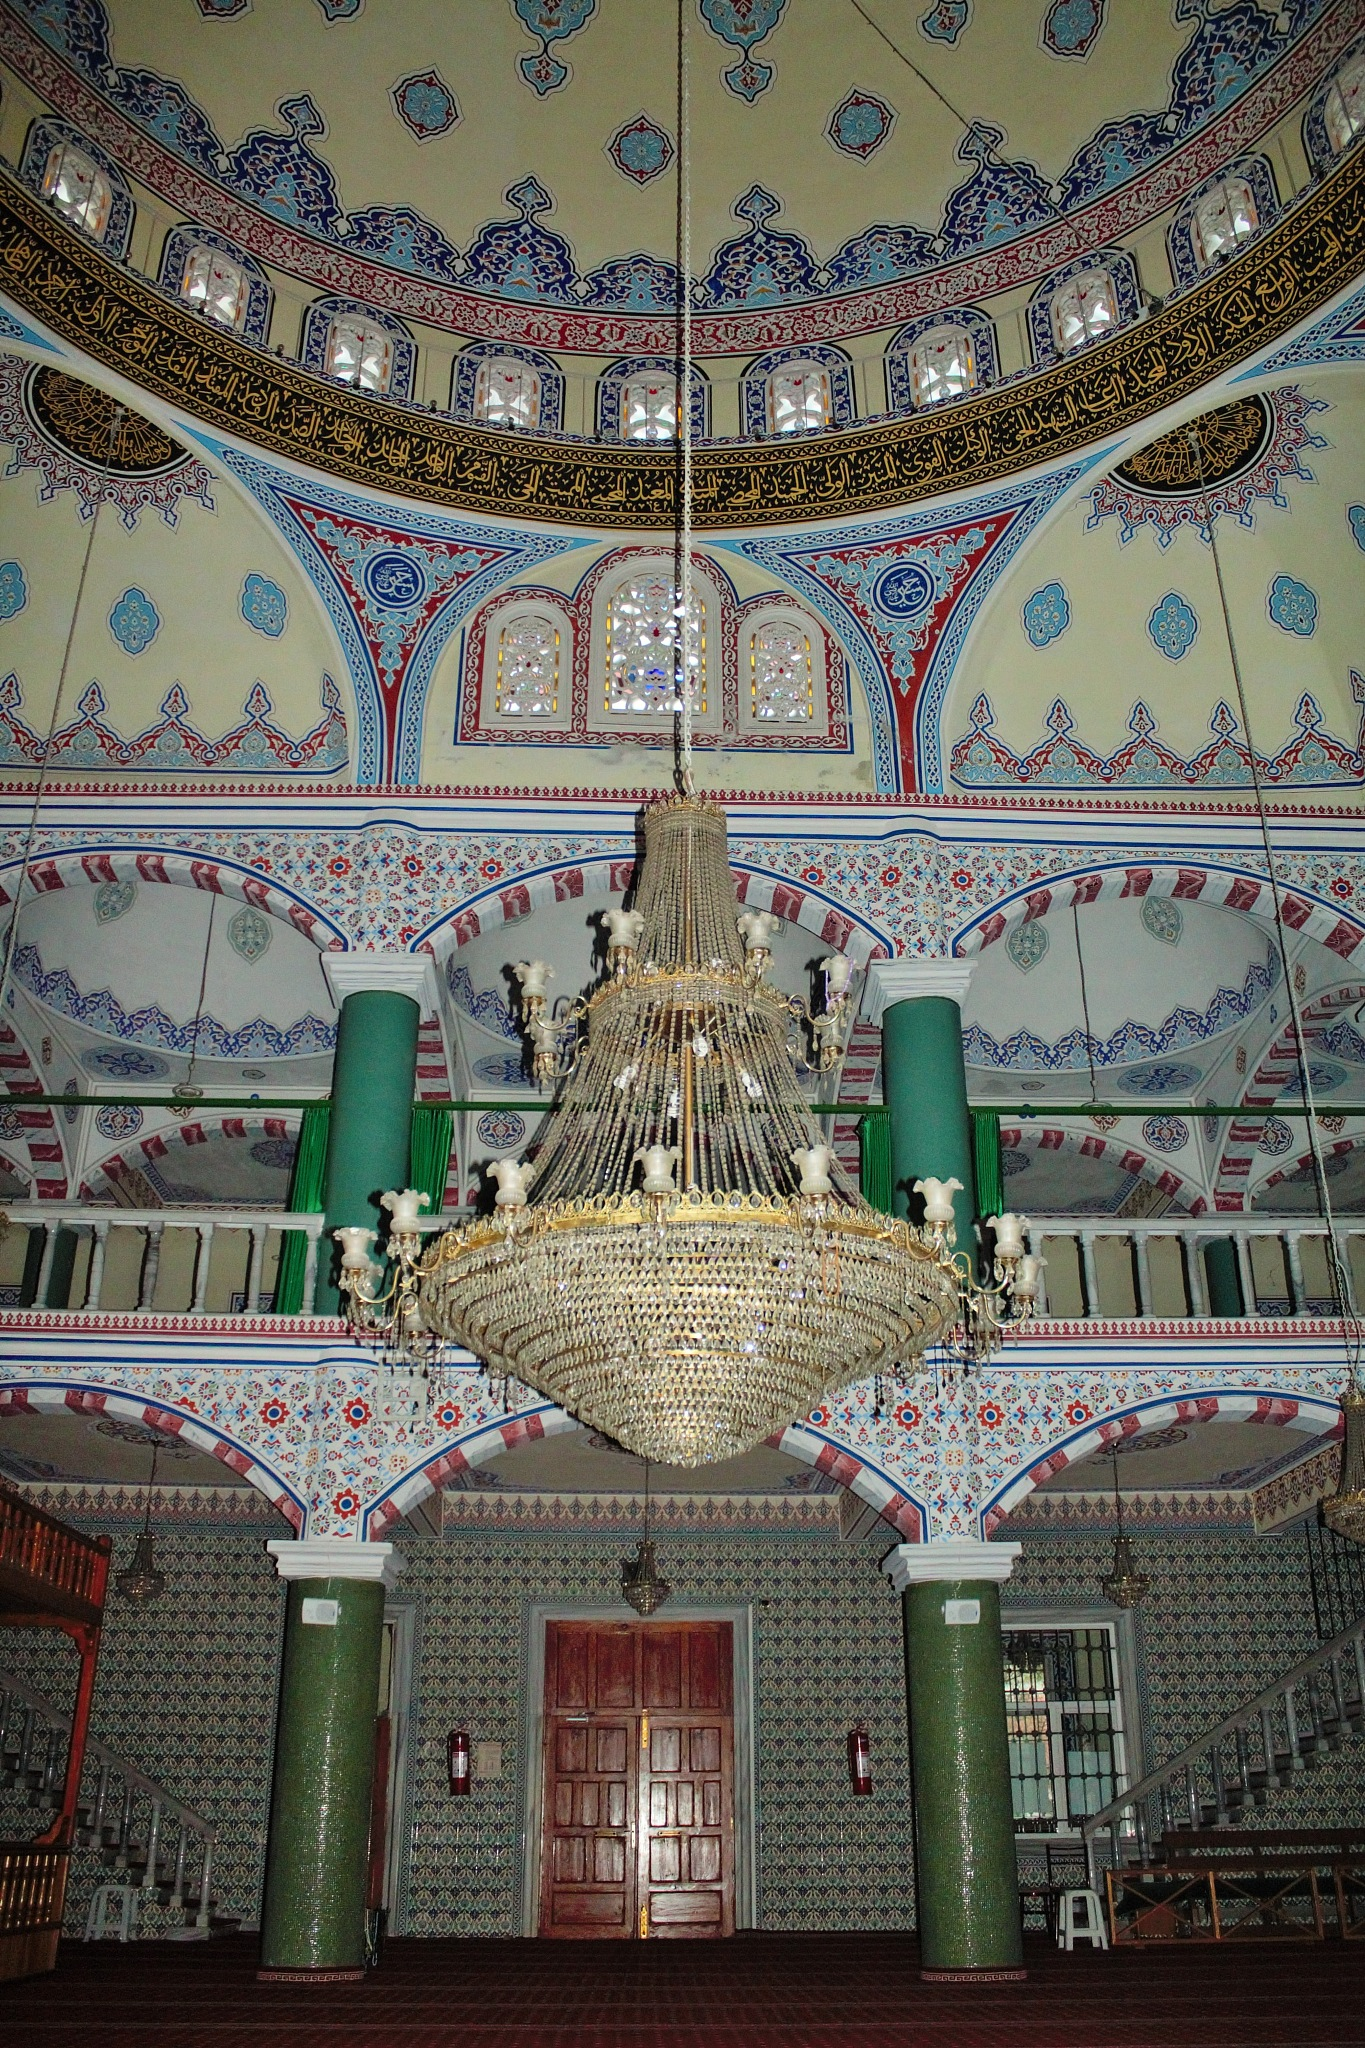 fatih mosque 5 by Ufuk Bolat